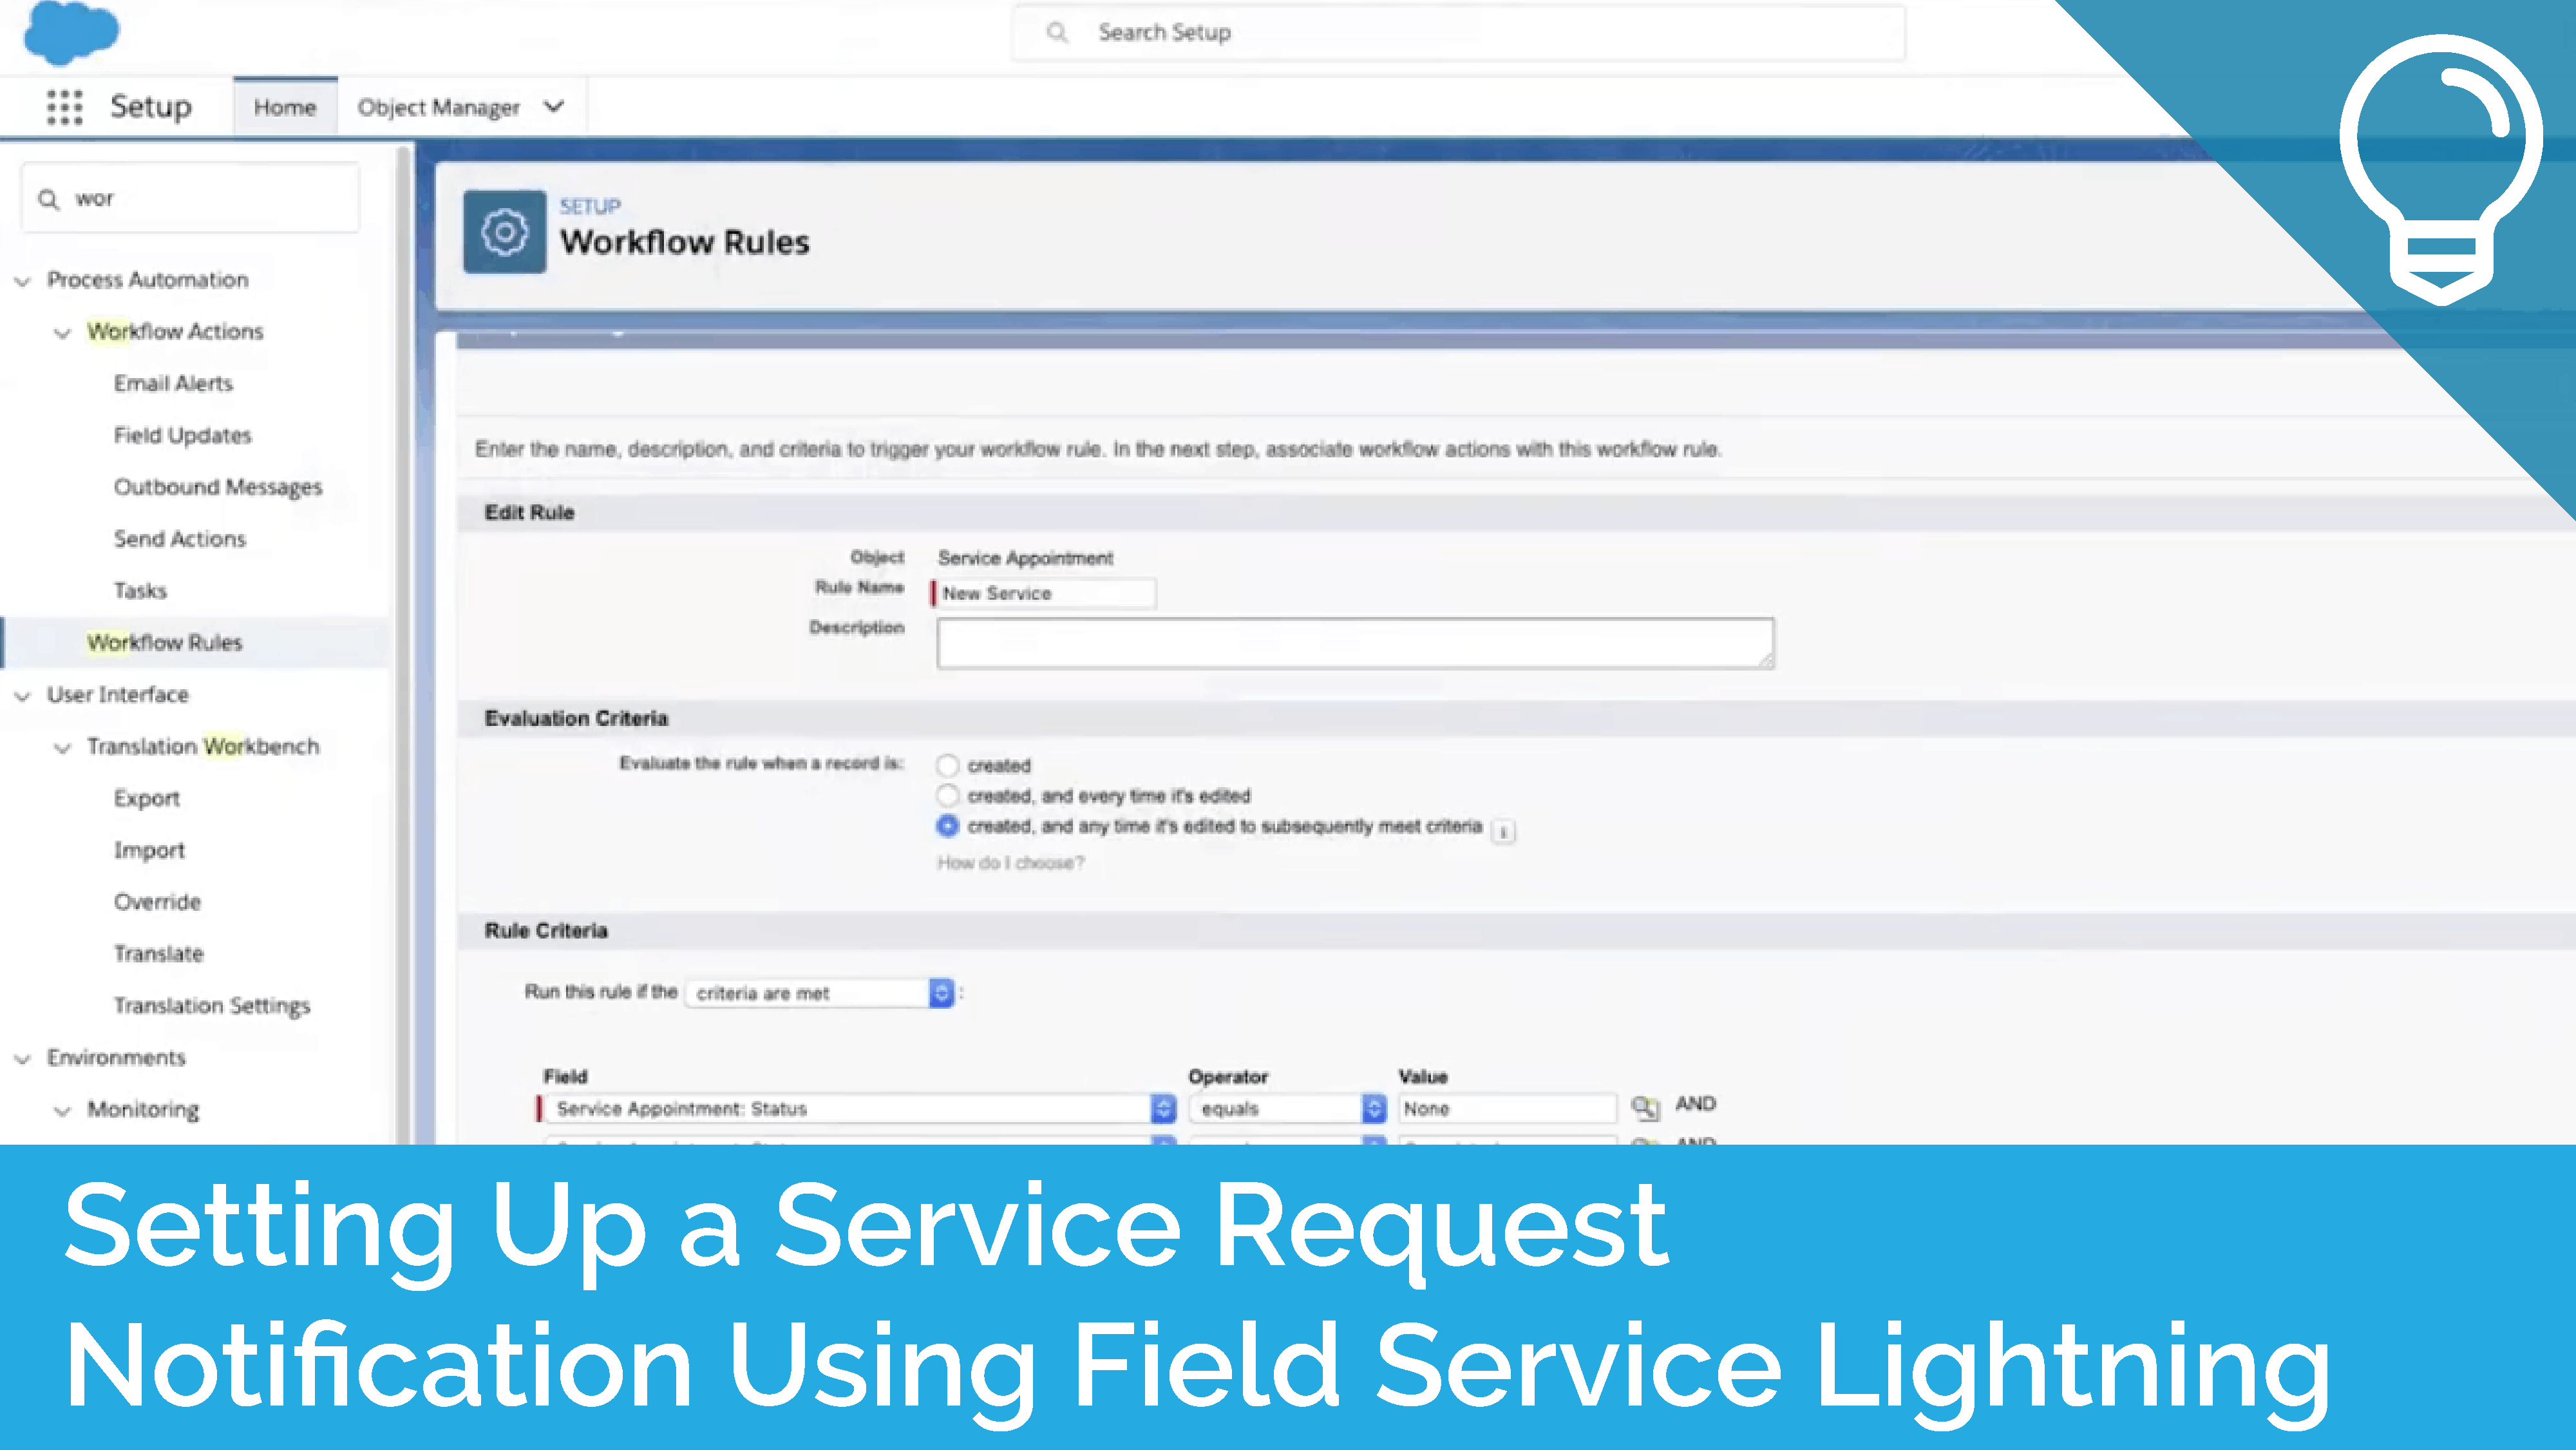 Setting Up a Service Request Notification Using Field Service Lightning